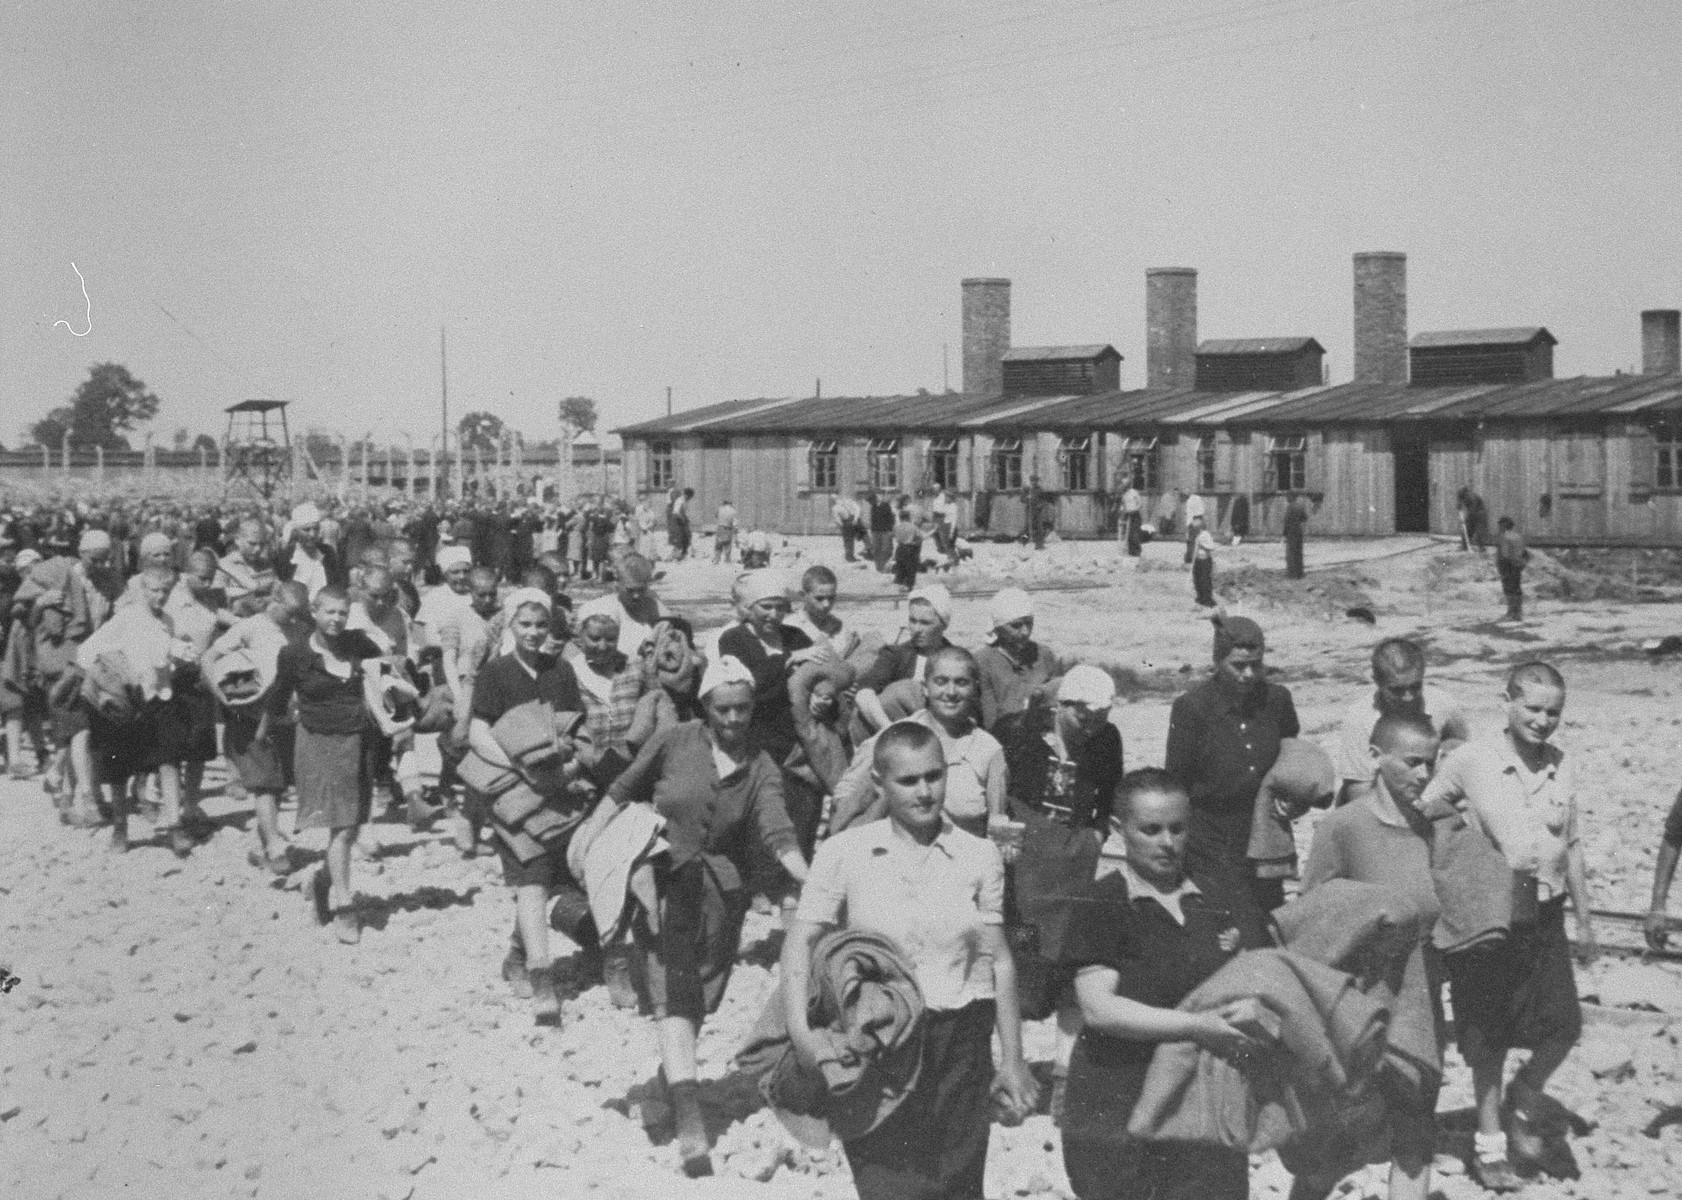 Jewish women from Subcarpathian Rus and Czechoslovakia who have been selected for forced labor at Auschwitz-Birkenau, march toward their barracks carrying bed rolls after disinfection and headshaving.  Ilse Drexler Bauer (later Maier) is on the left column fourth from the front in a dark dress and white scarf.  Her cousin Margit Novakova is directly in front of her in a grey dress and white hat.  According to Ilse Maier this was a mixed Czech Hungarian work detail.